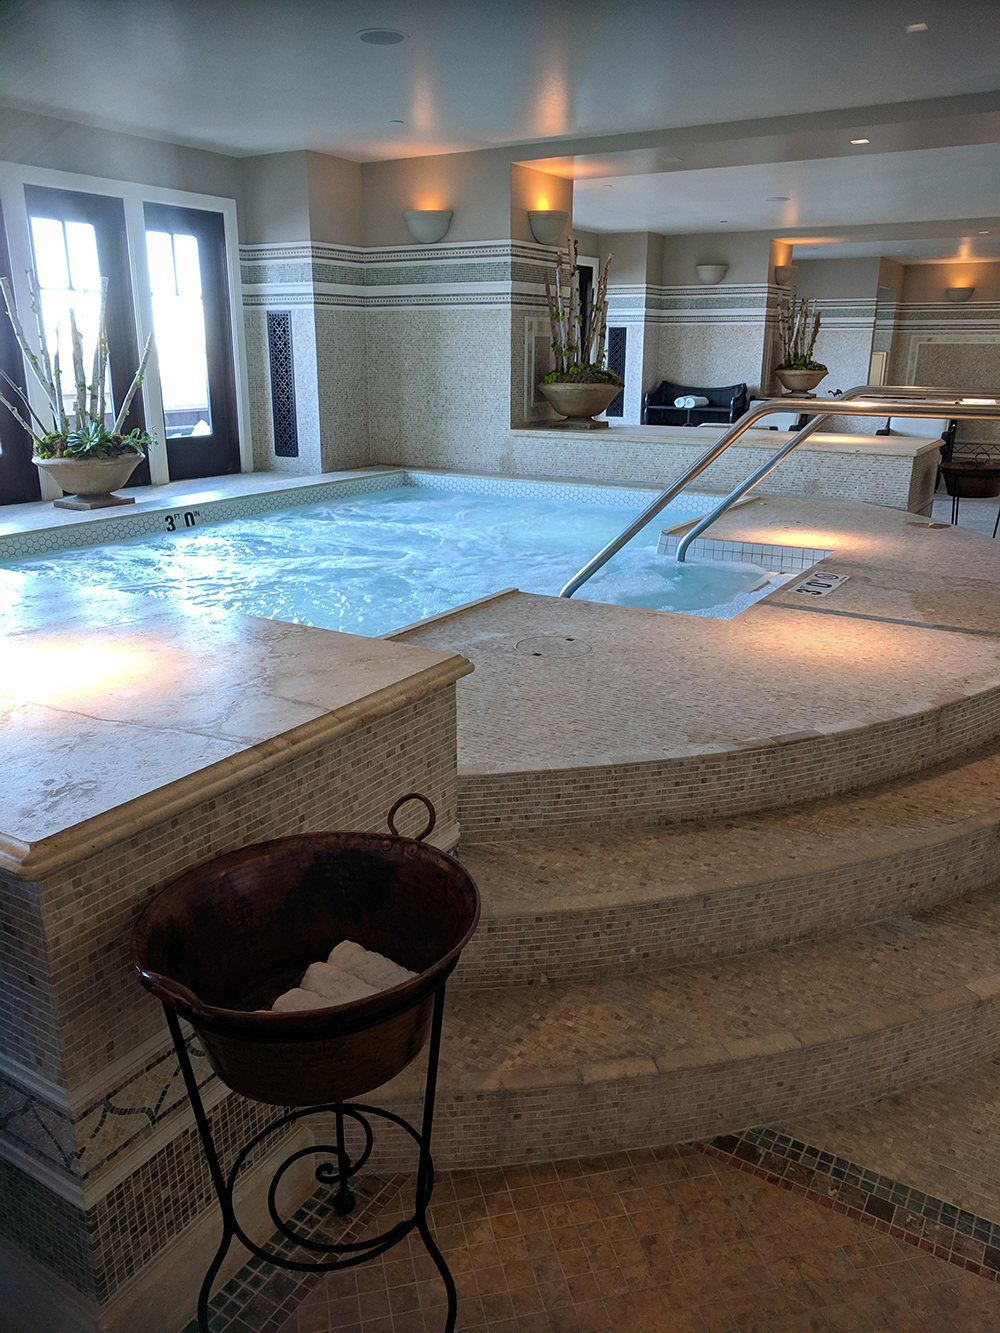 The whirlpool also features a stunning mosaic design.